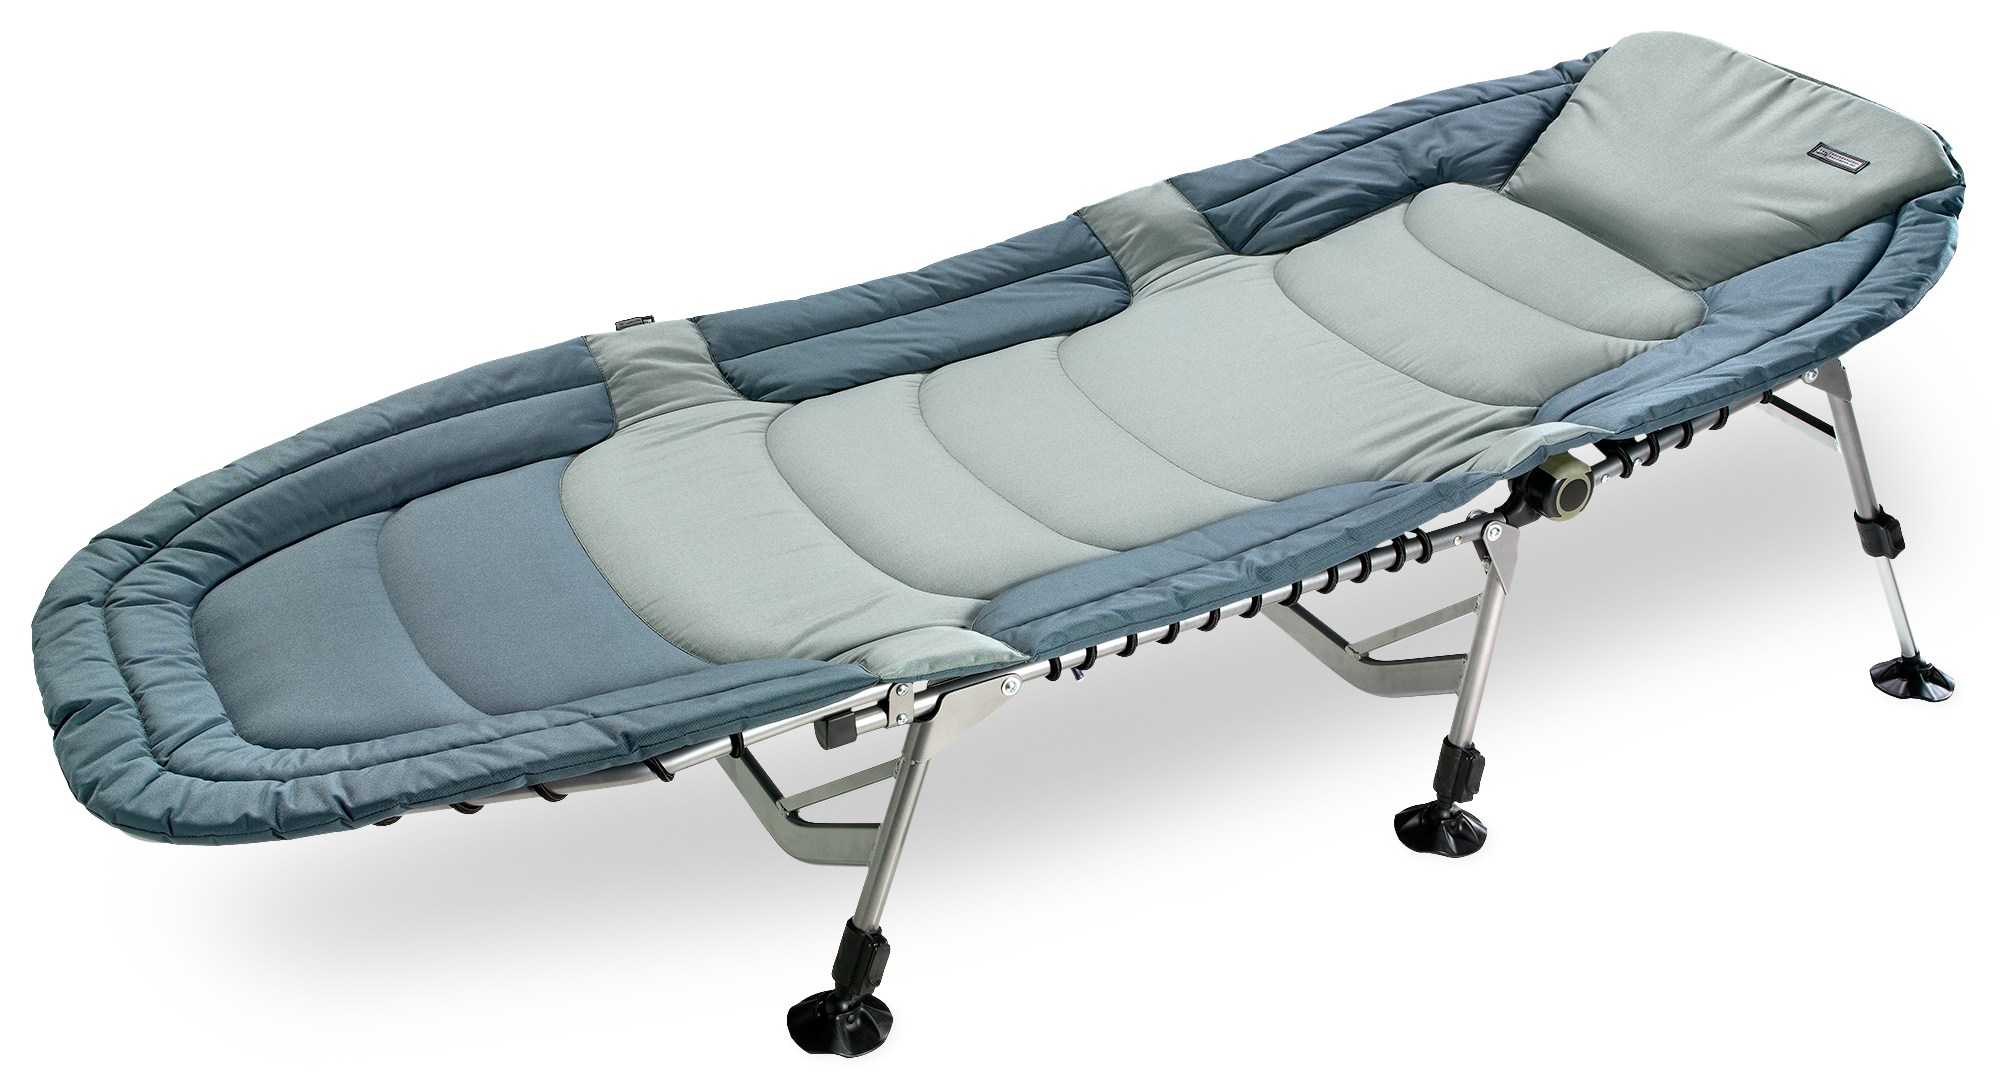 Camping bed costco - Rei